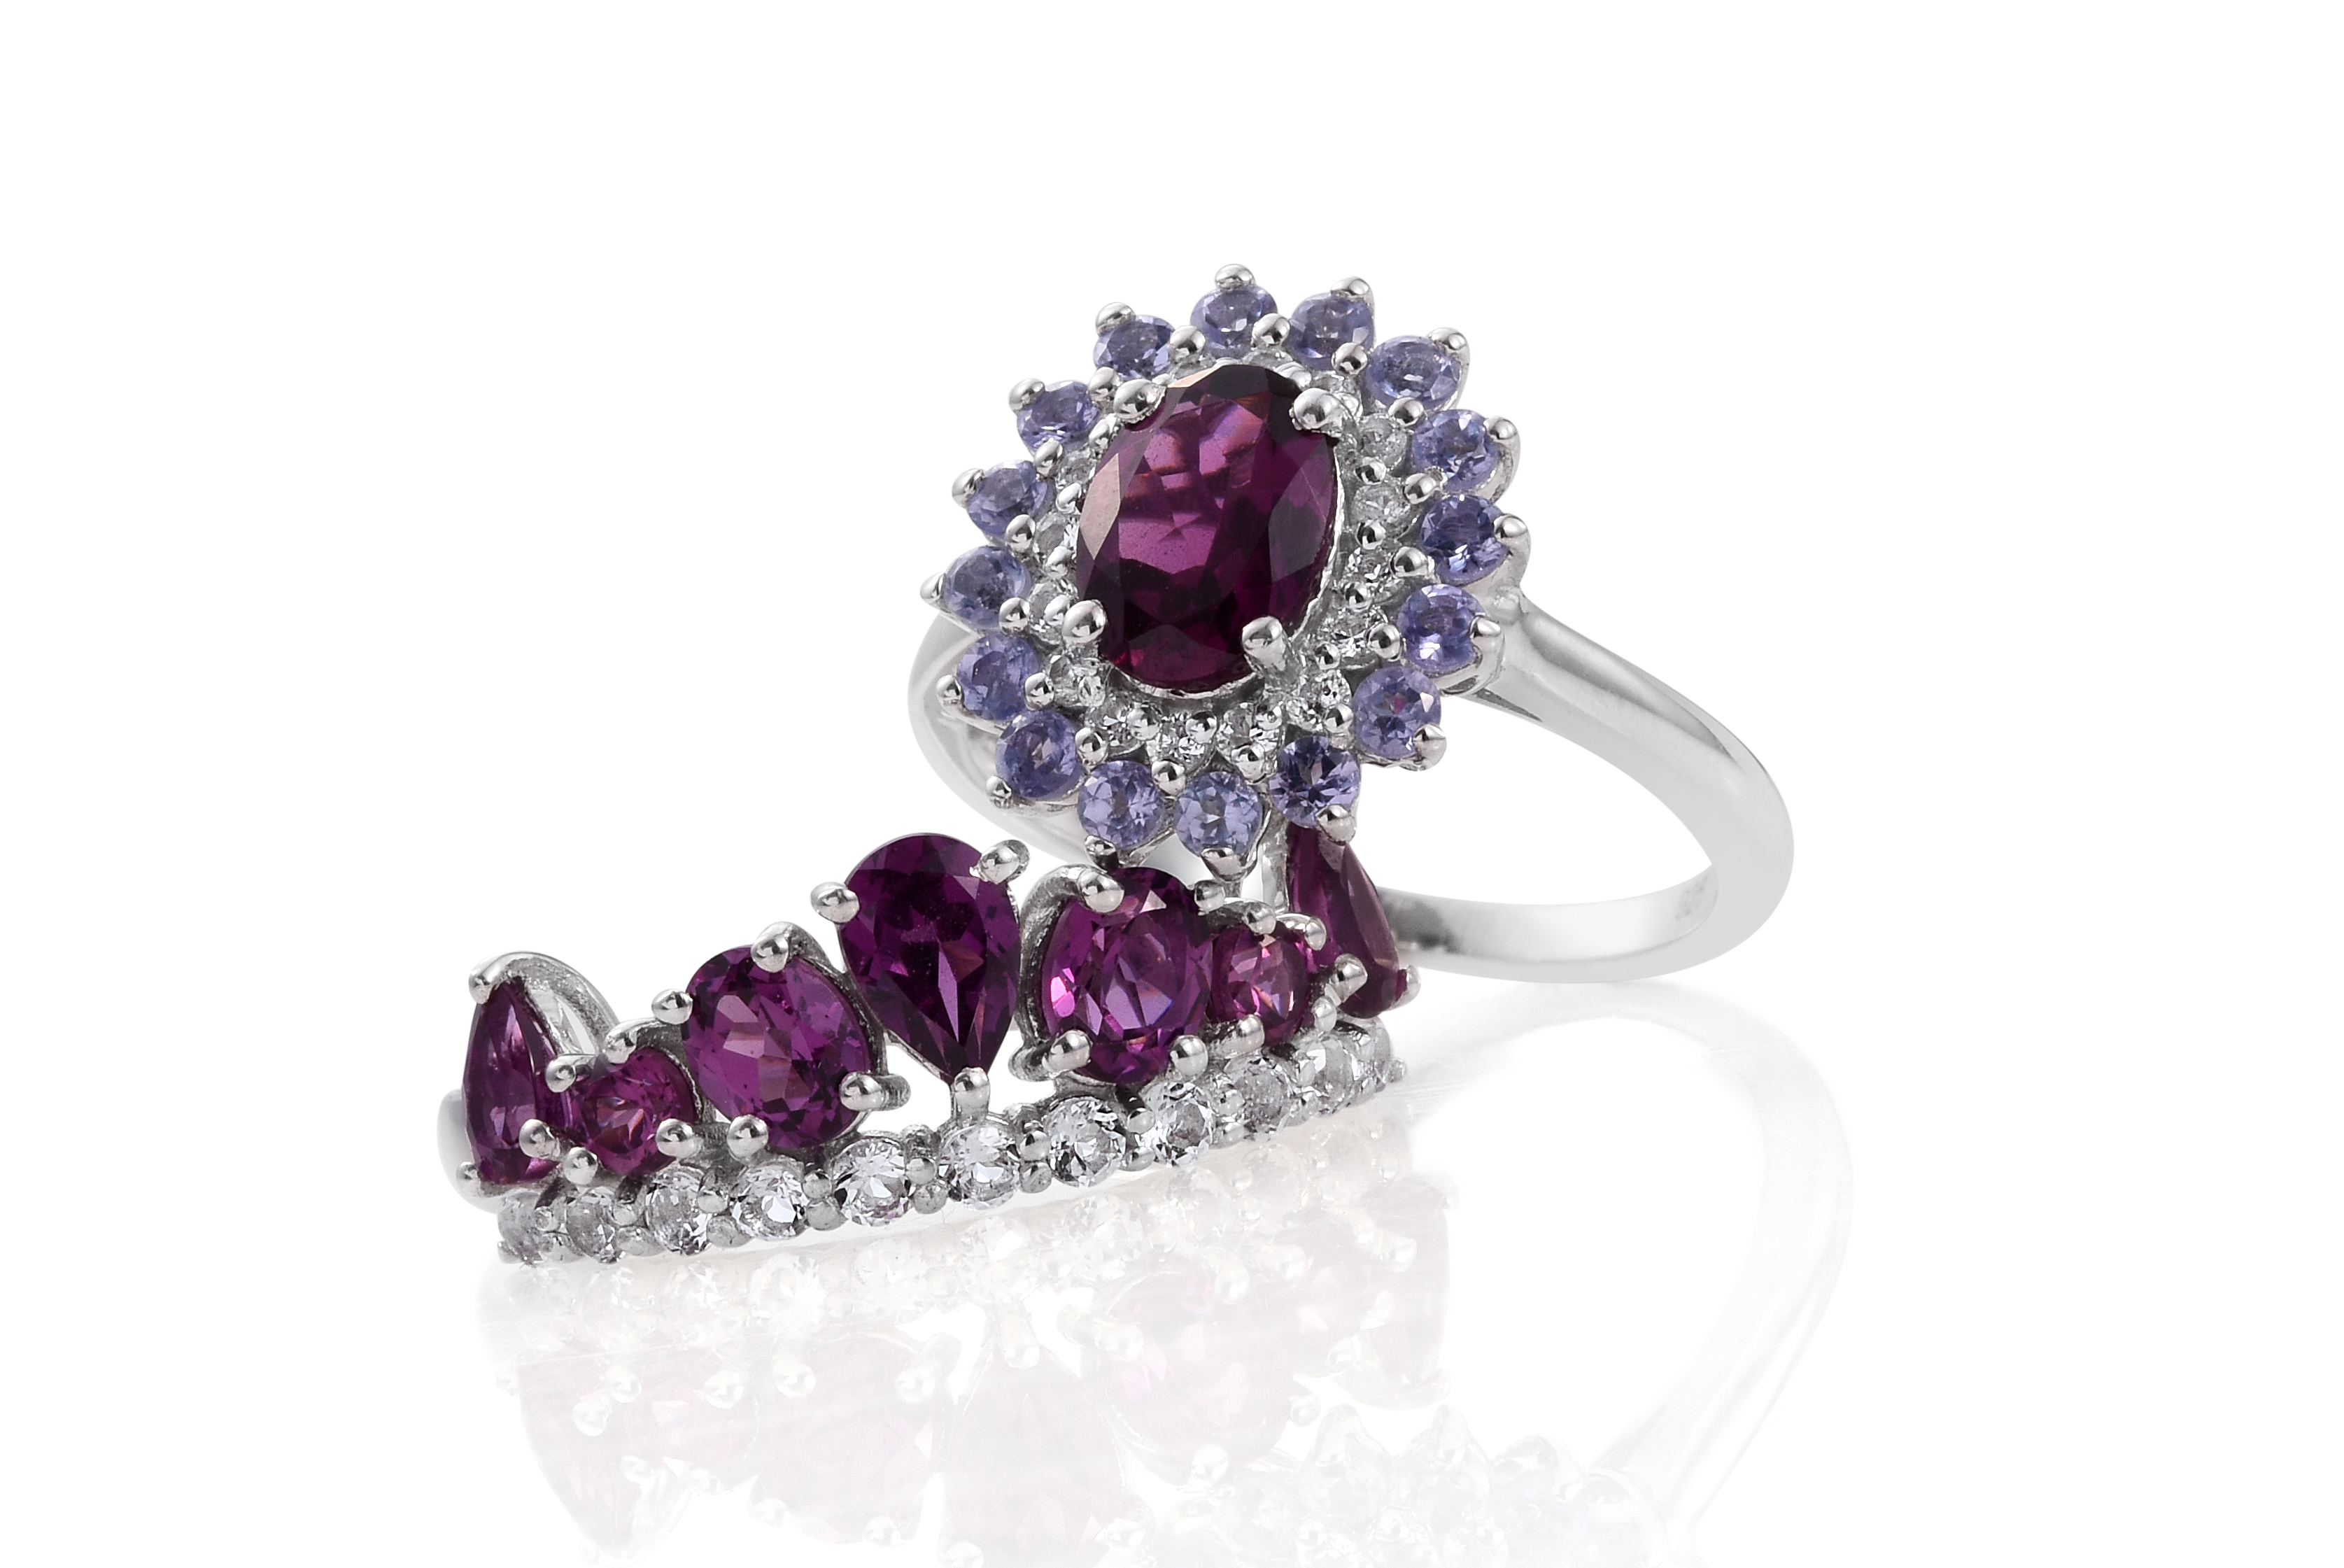 shop jewelry purple lc value garnet meaning jewellery education gemstone more properties stone